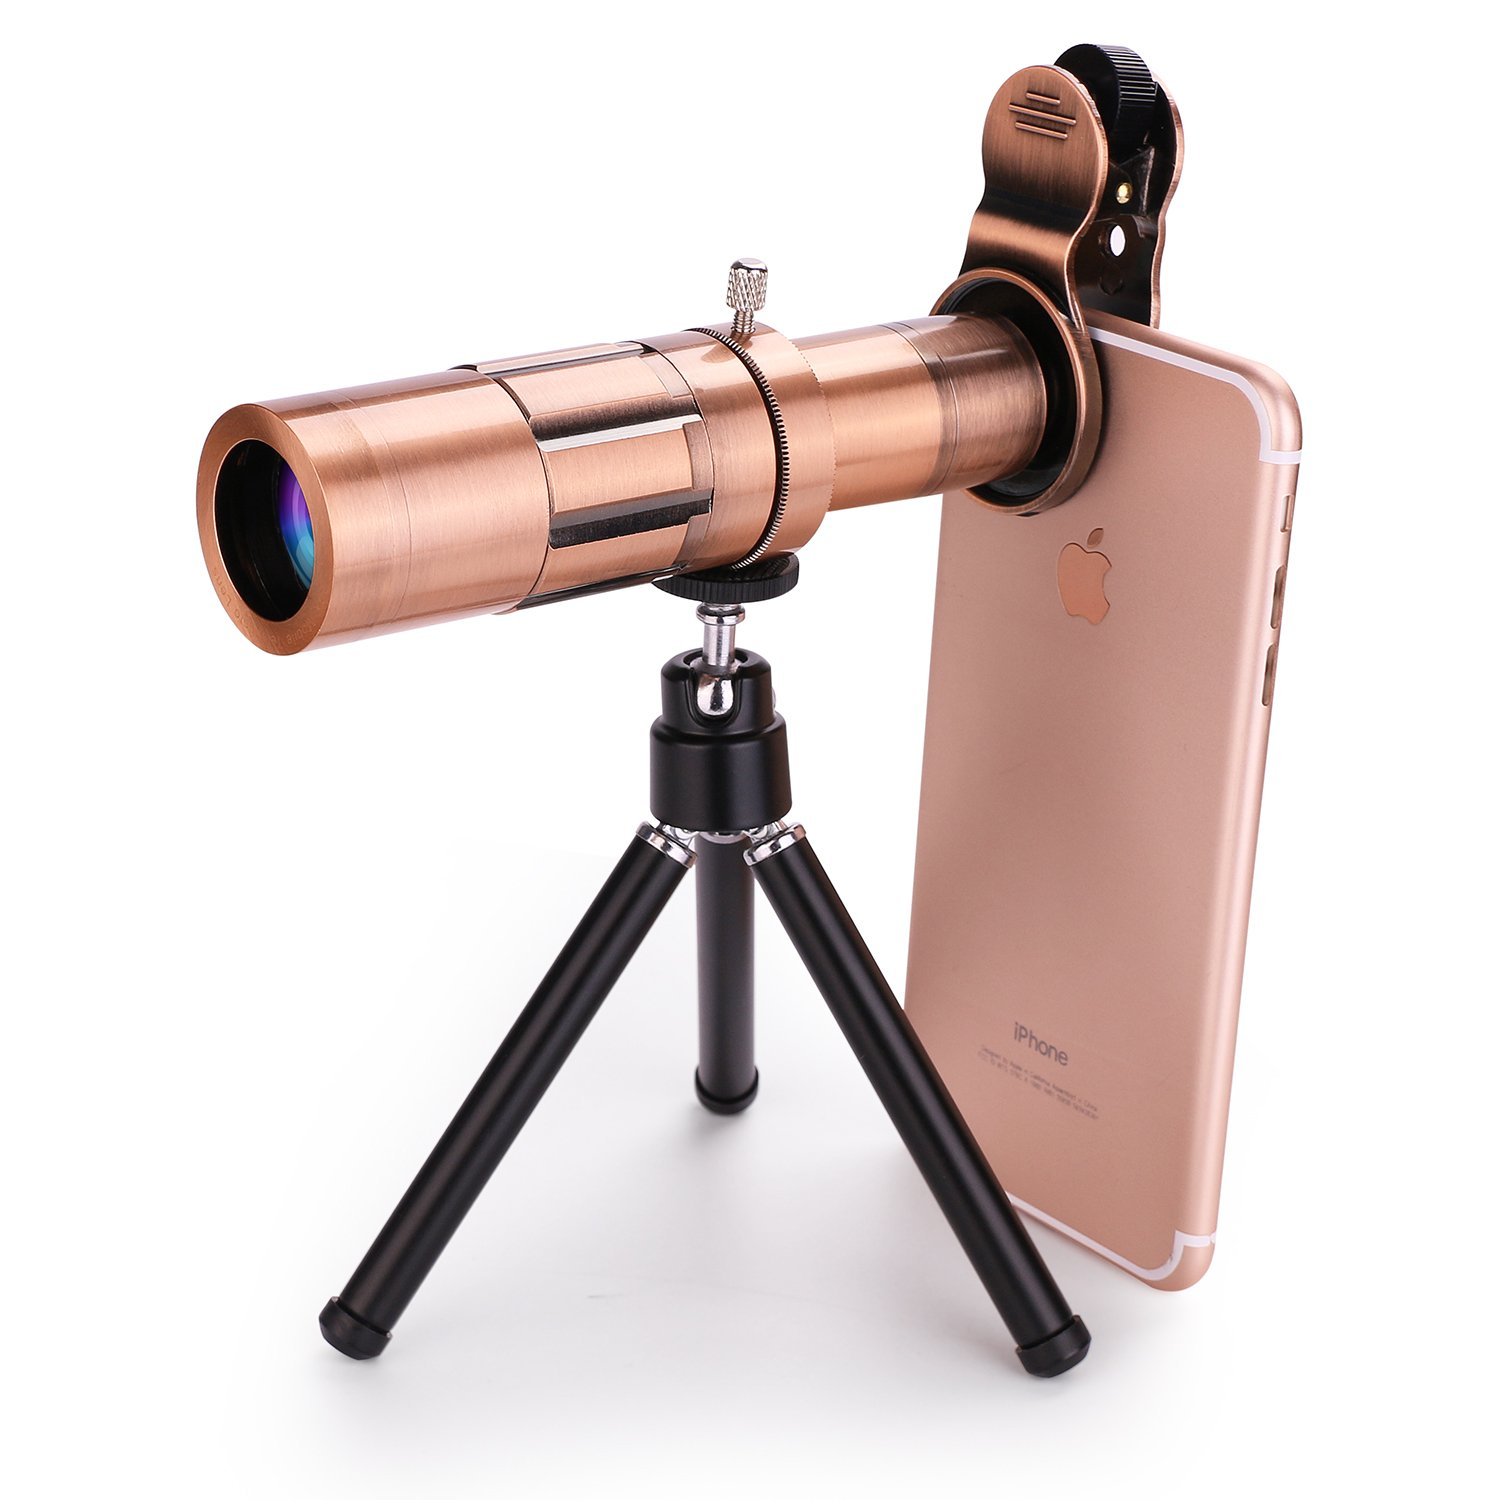 MOCALACA Metal Material Mobilephone 20X Zoom Camera Lens, Telephoto Lens with Flexible Tripod + Universal Clip for iPhone X/8/7/7 Plus/6s/6/5, Samsung Galaxy/Note, Android and Most Smartphones